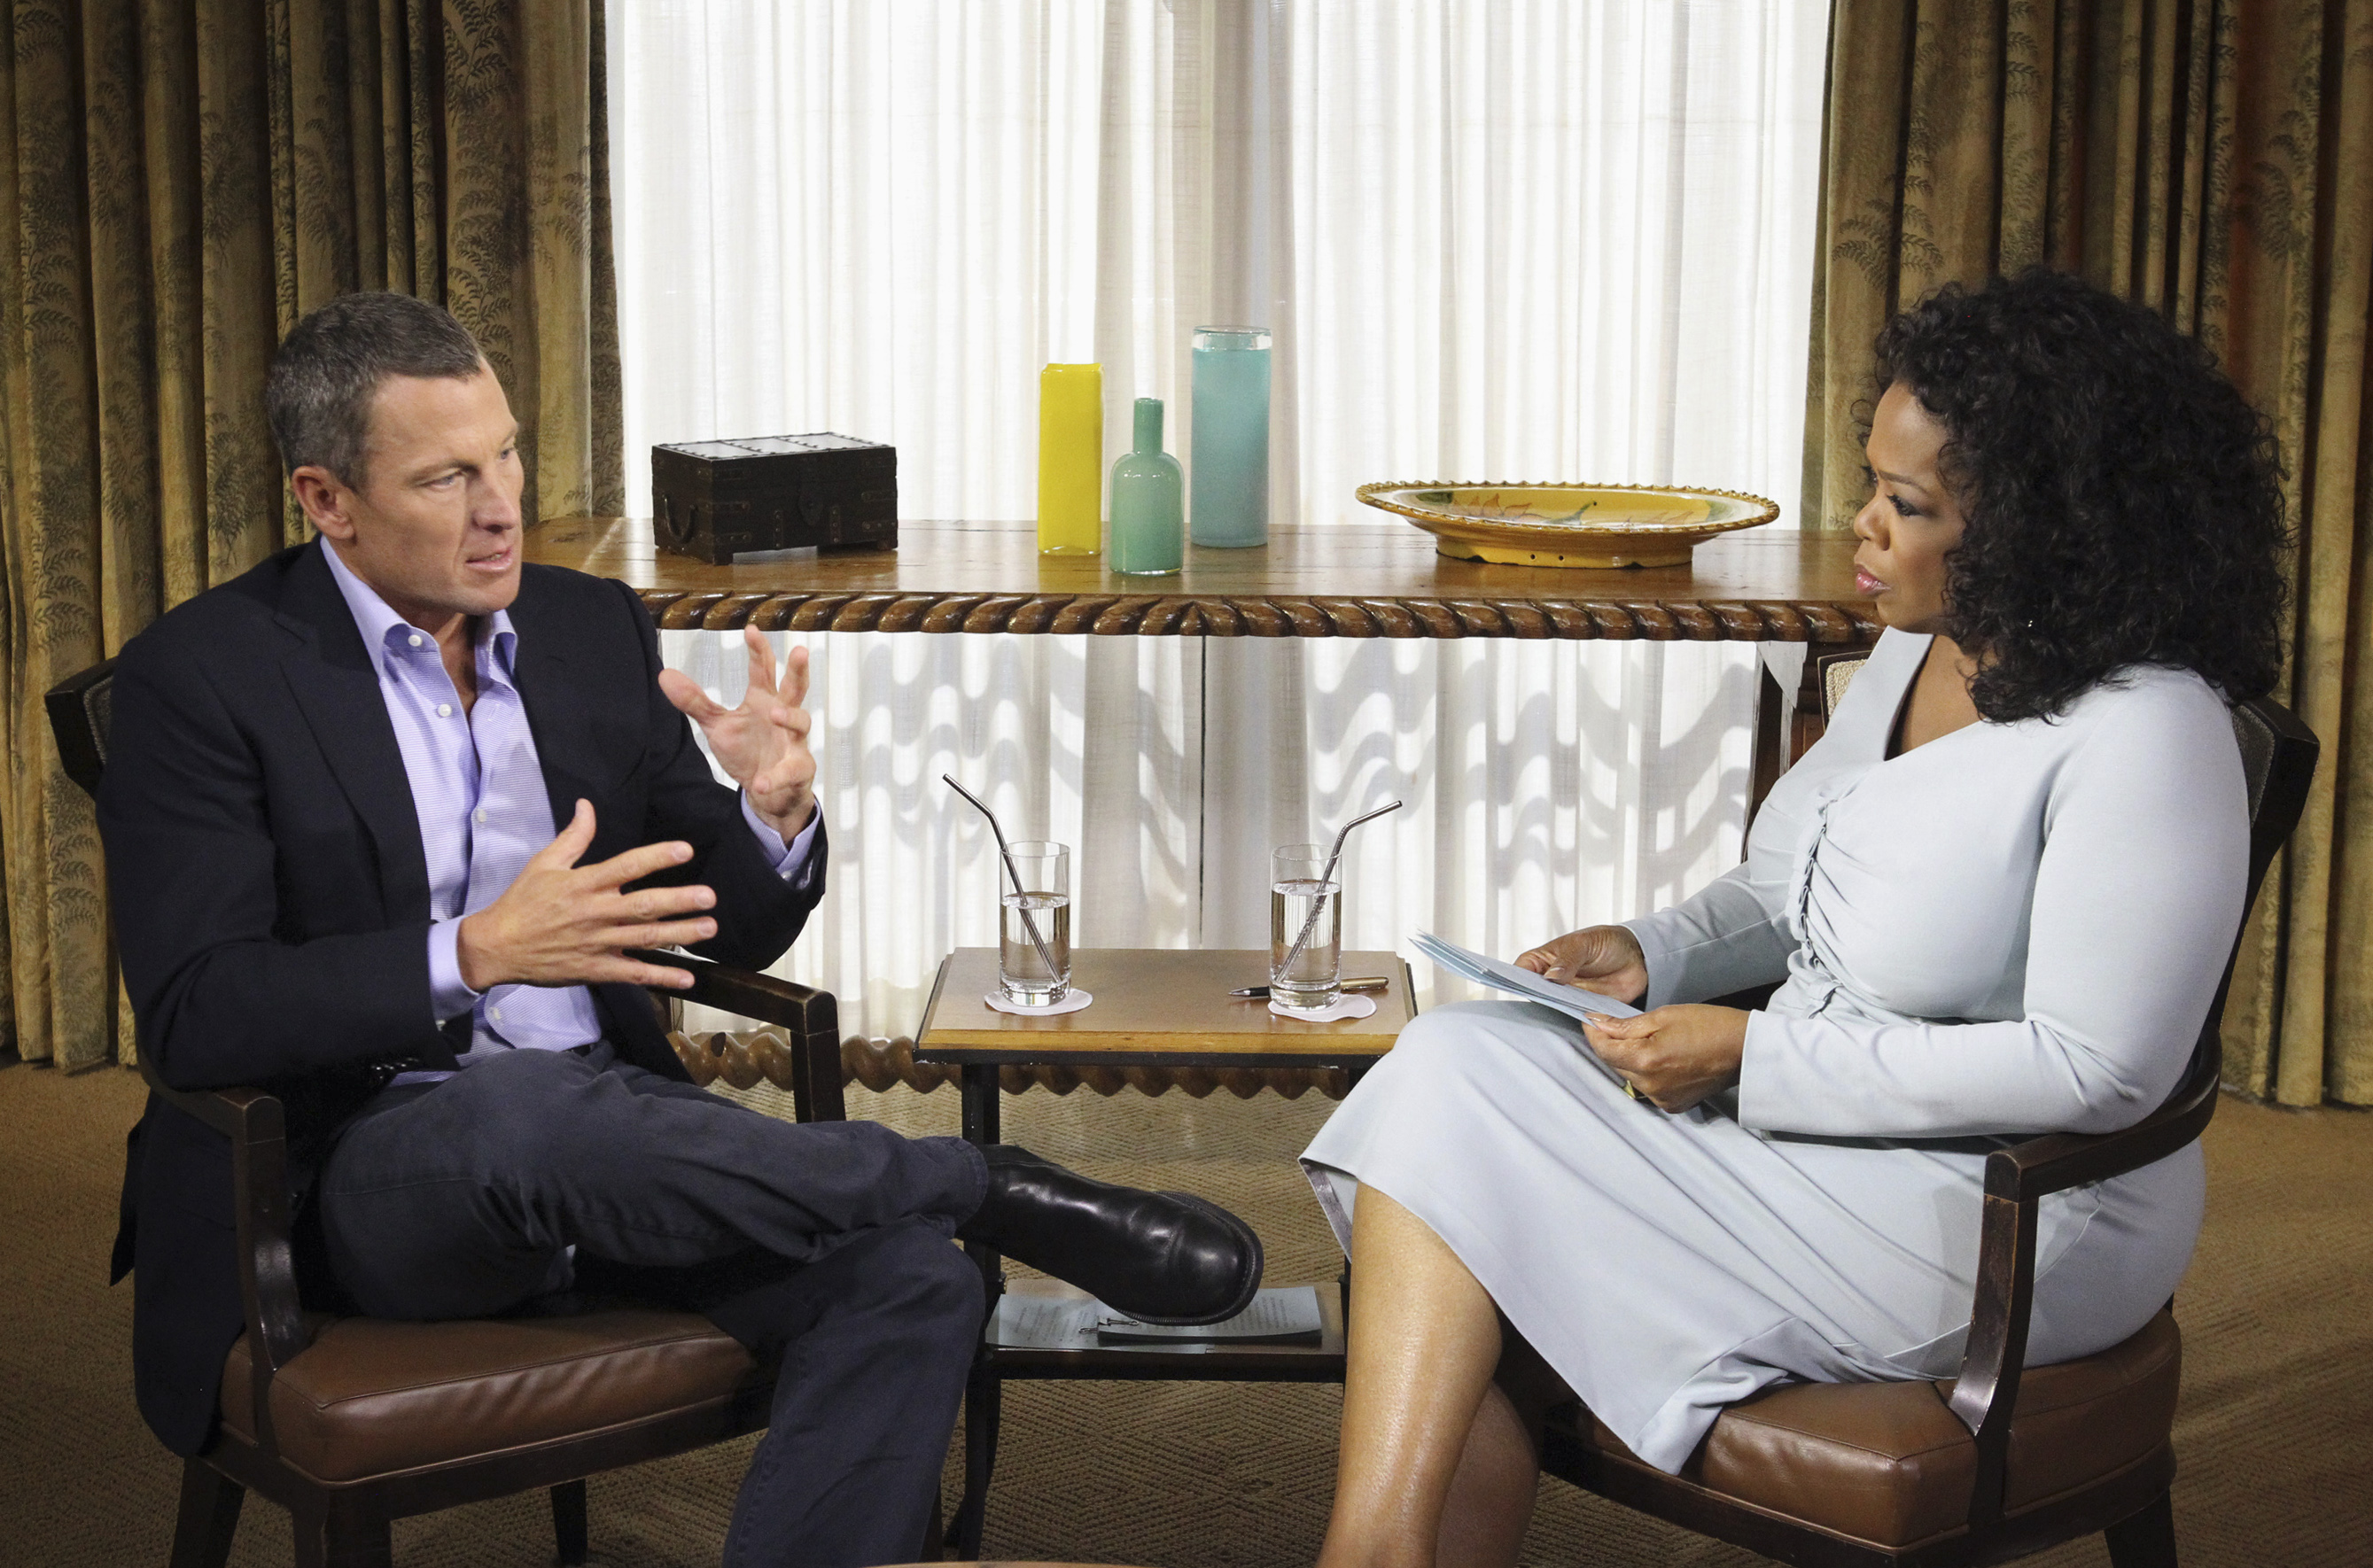 Feds to sue Lance Armstrong over doping scandal